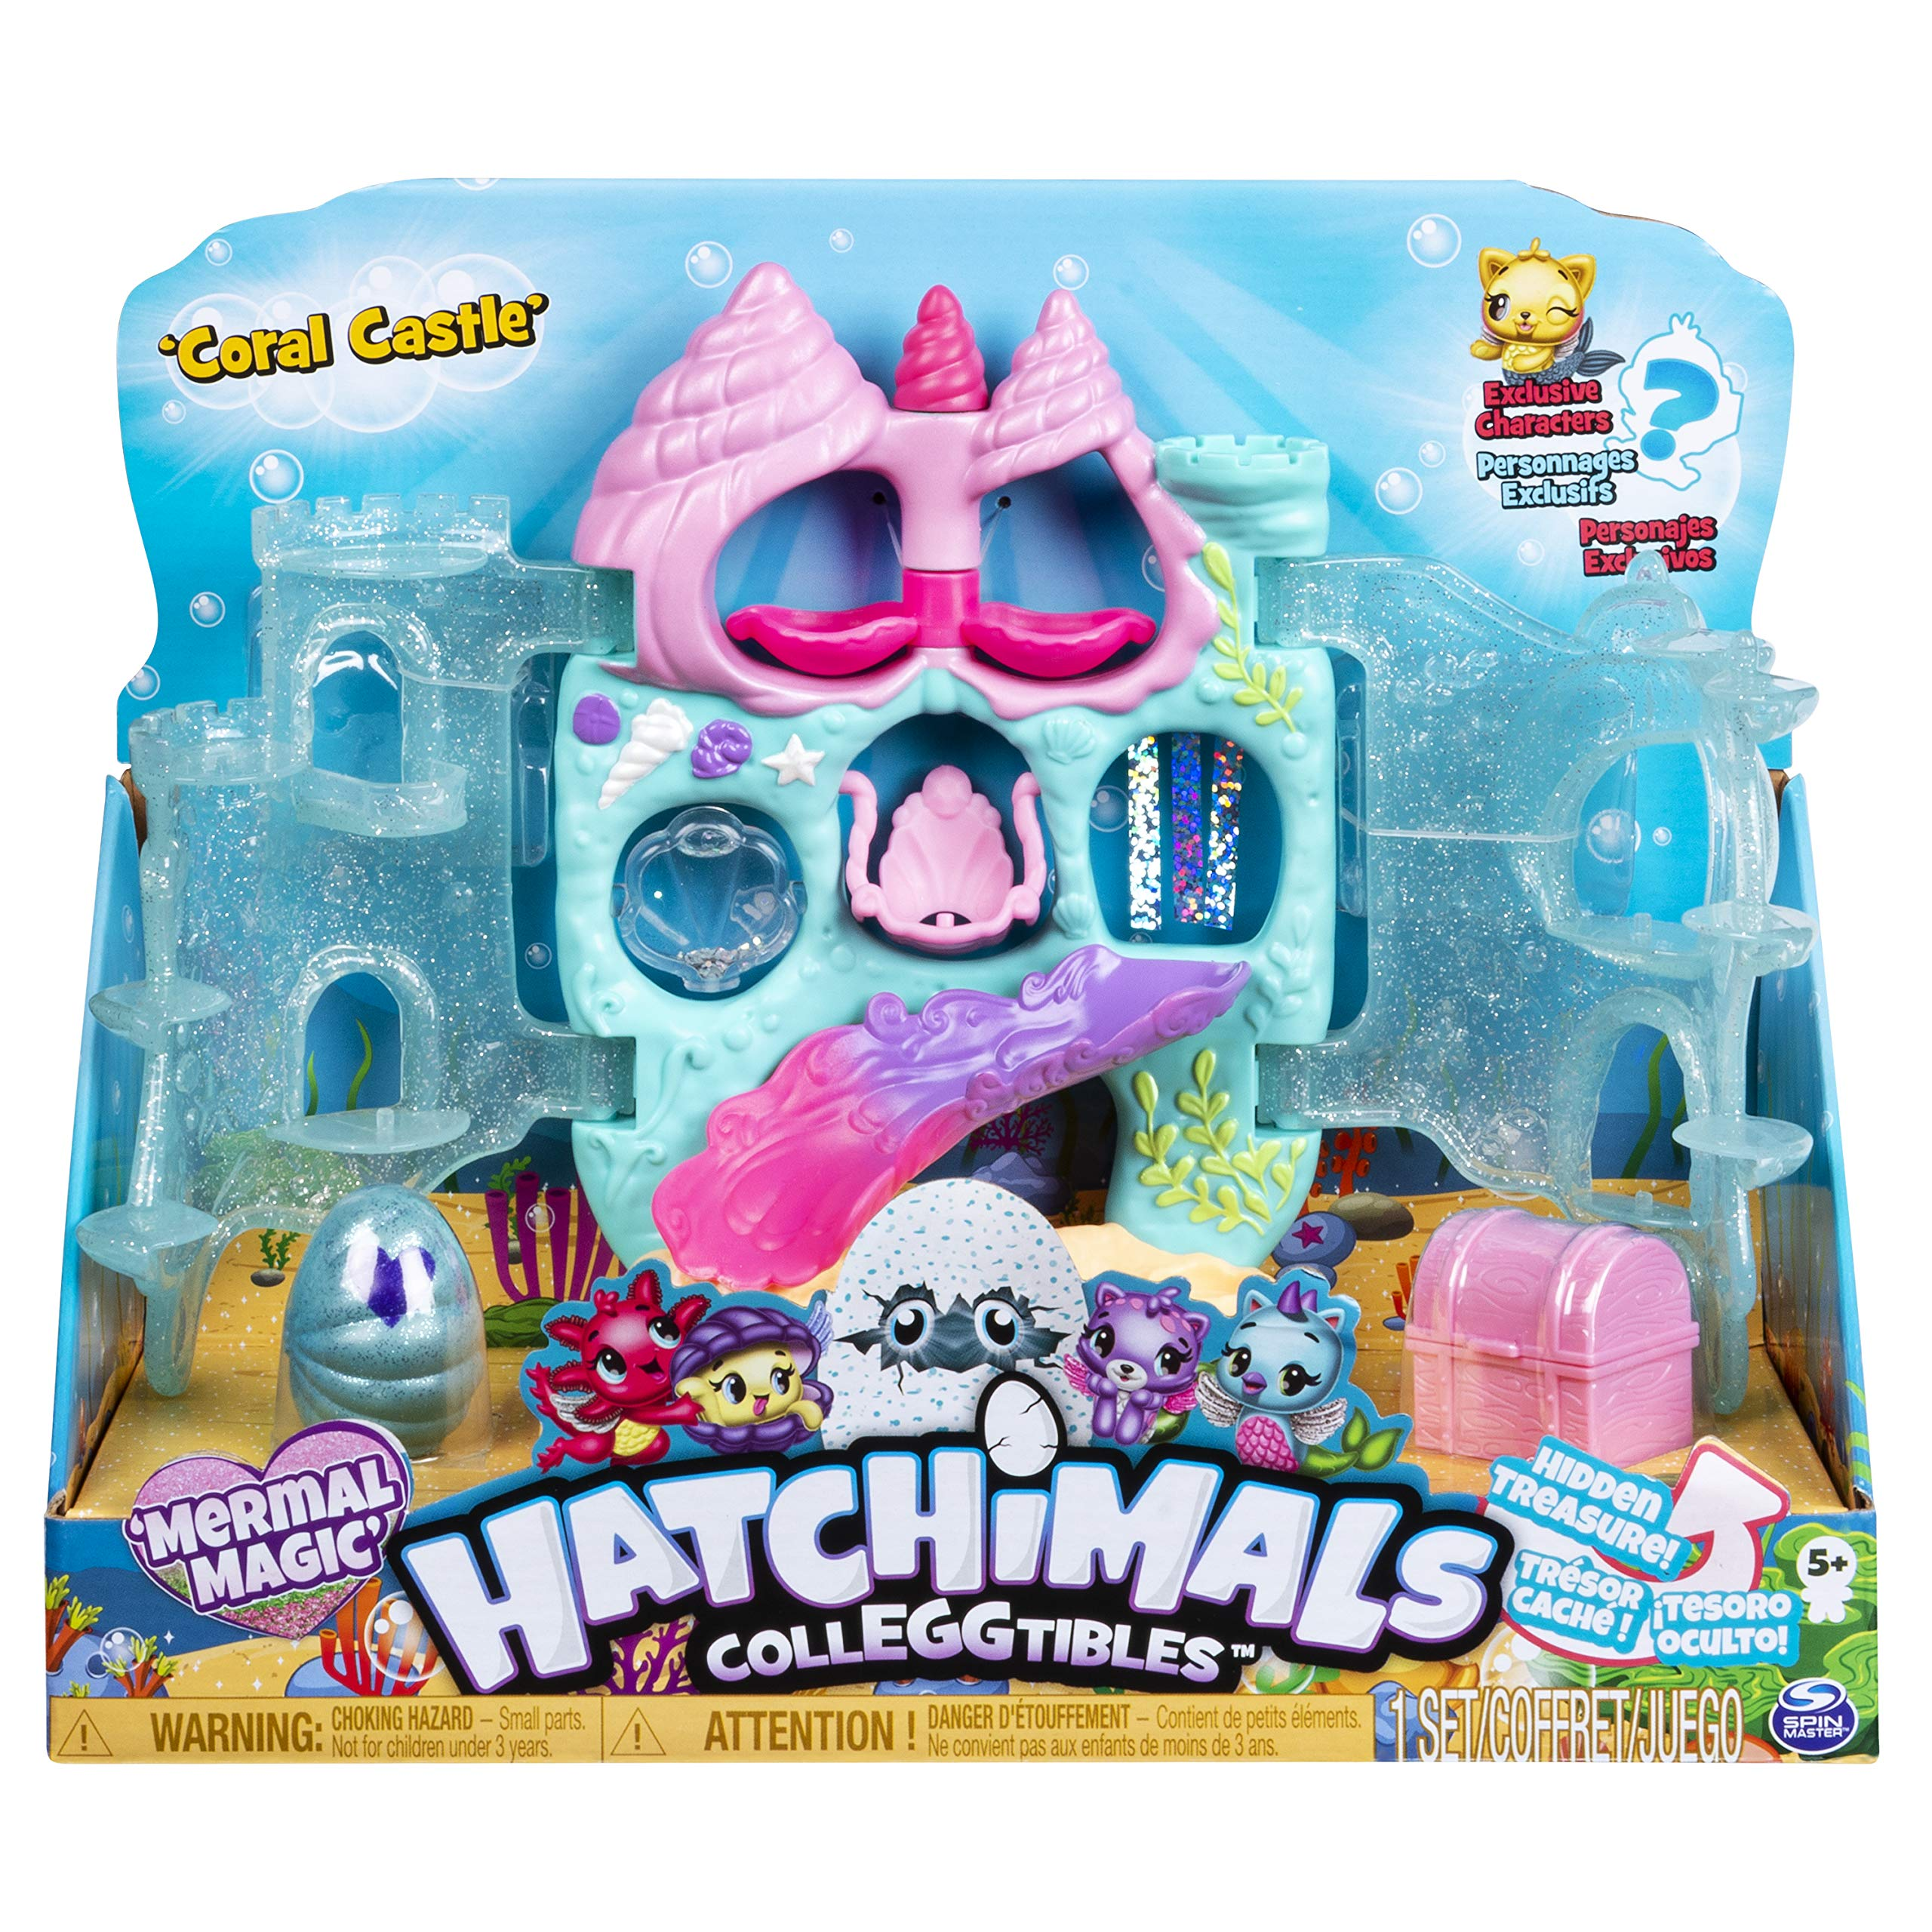 Mermal Magic 12-pack Egg Carton with Season 5 HATCHIMALS Multicolour for Kids Aged 5 and Up HATCHIMALS 6045511 CollEGGtibles